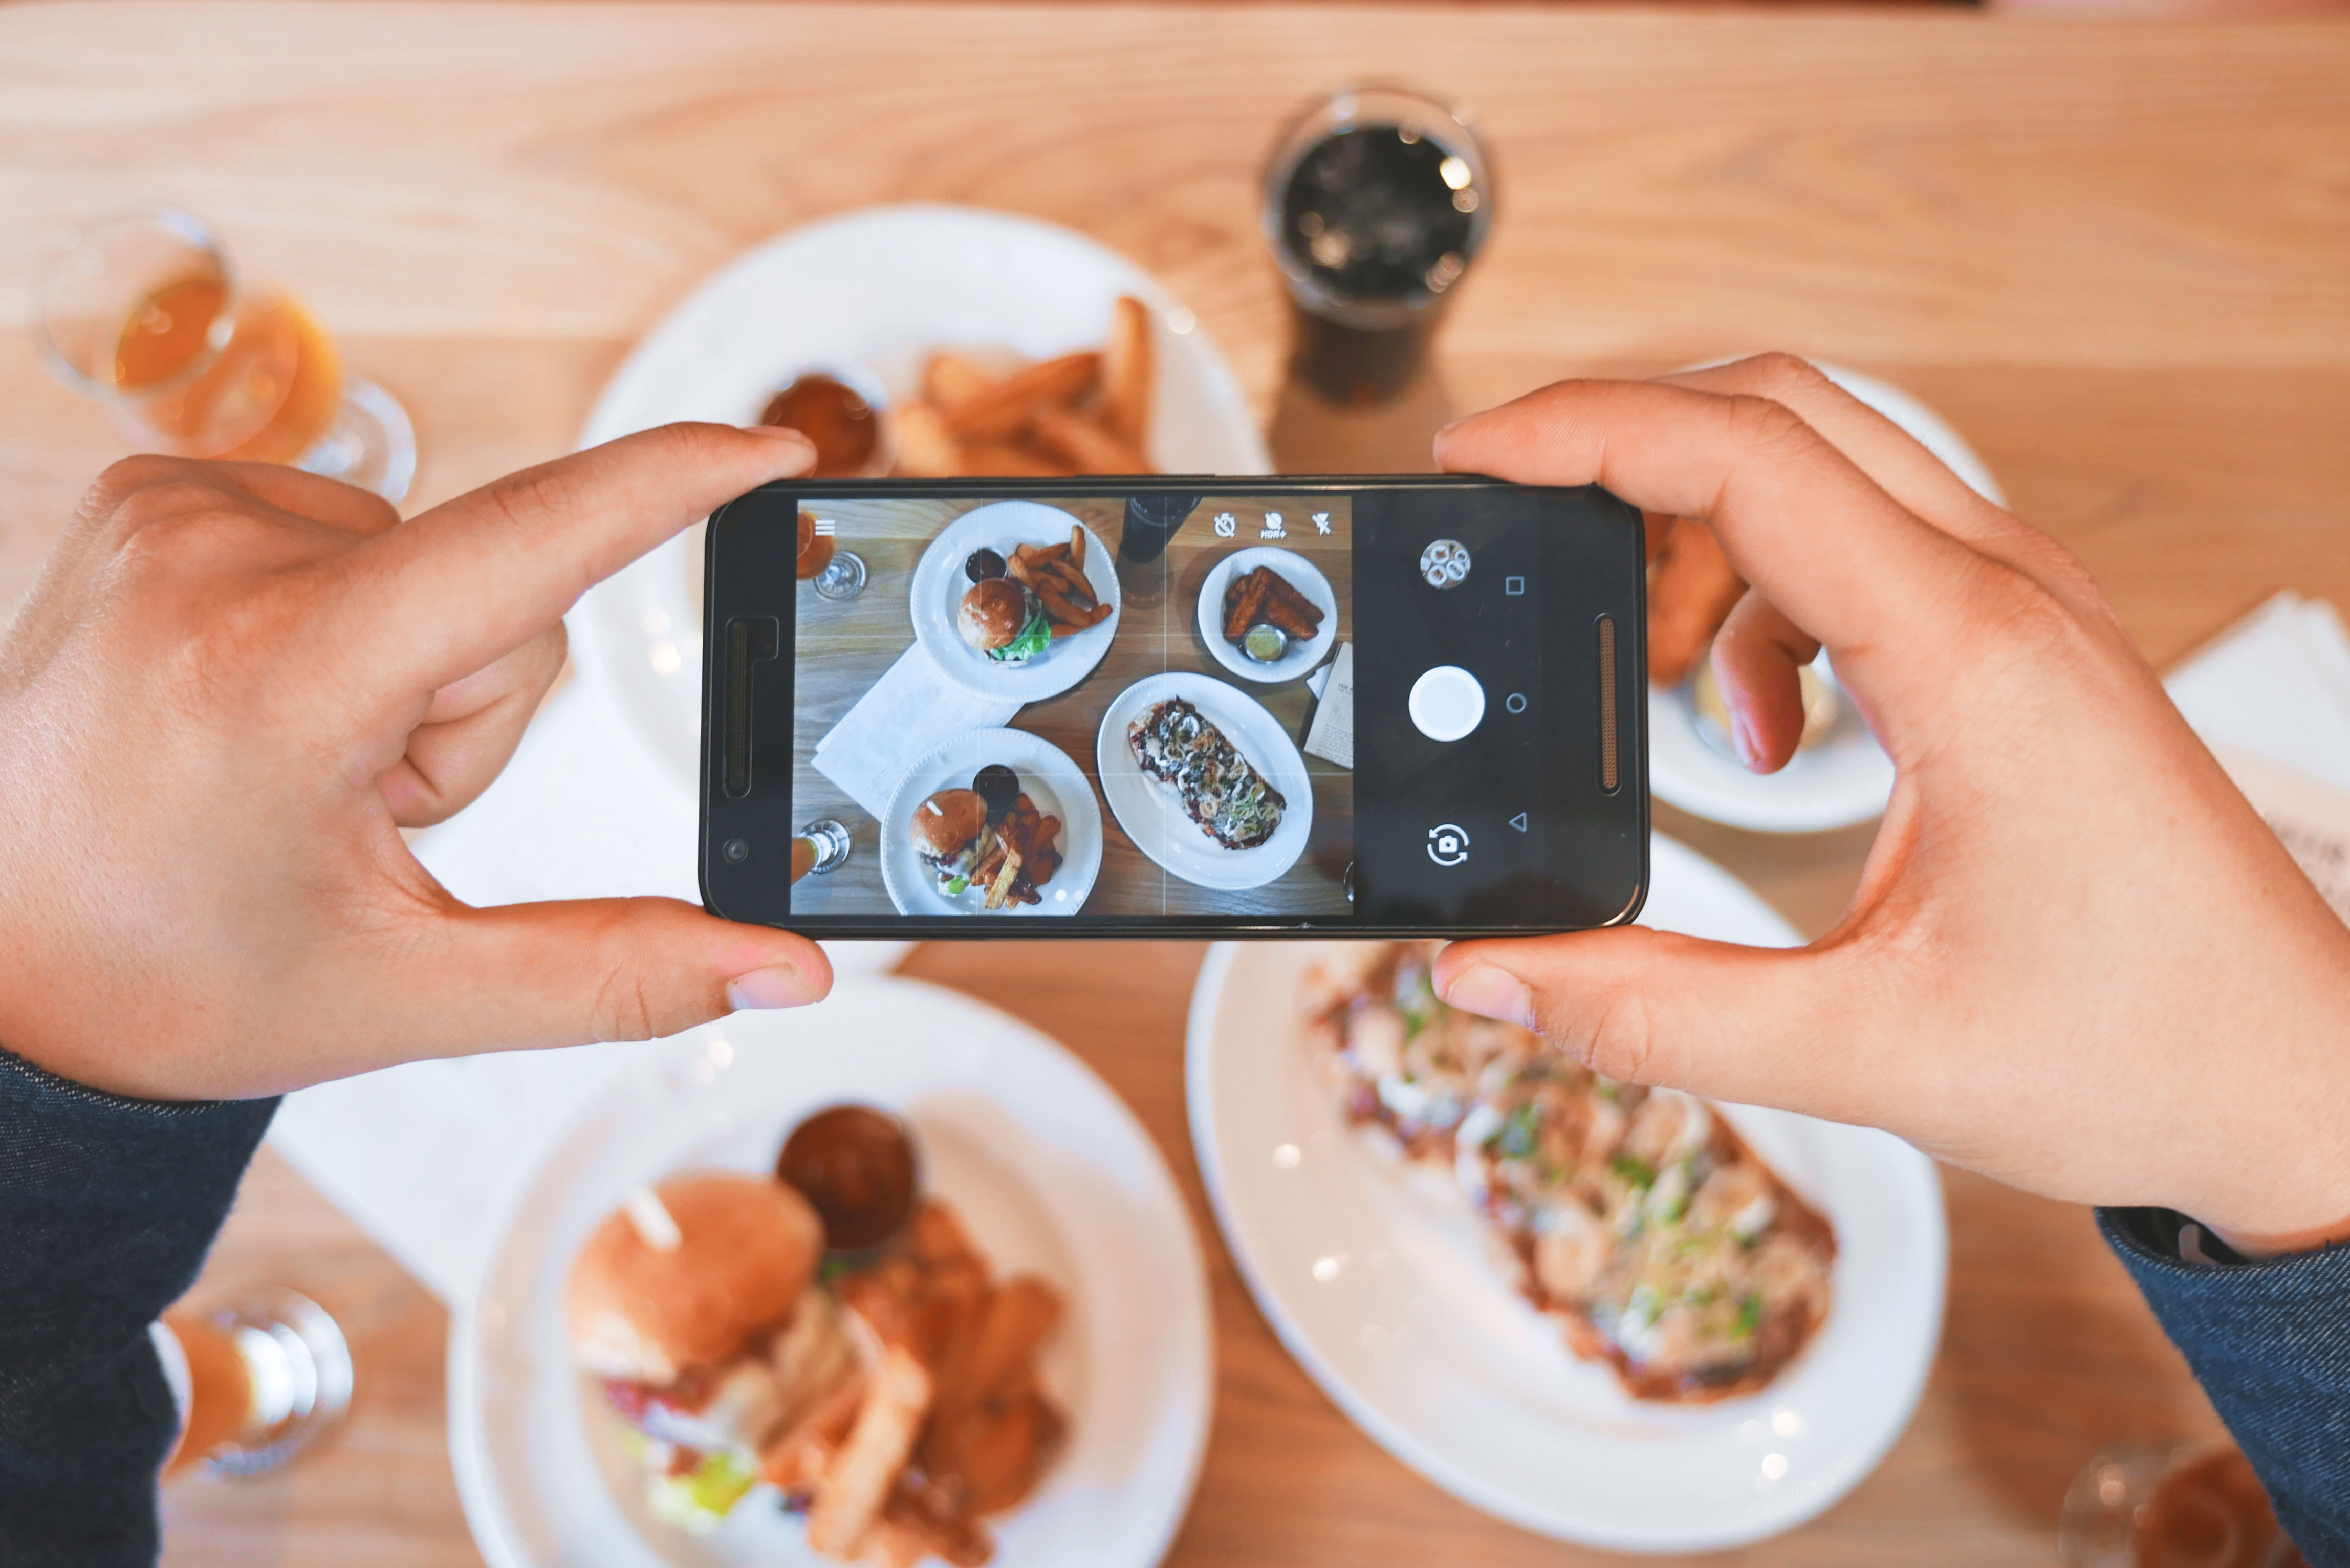 social media influencers and businesses